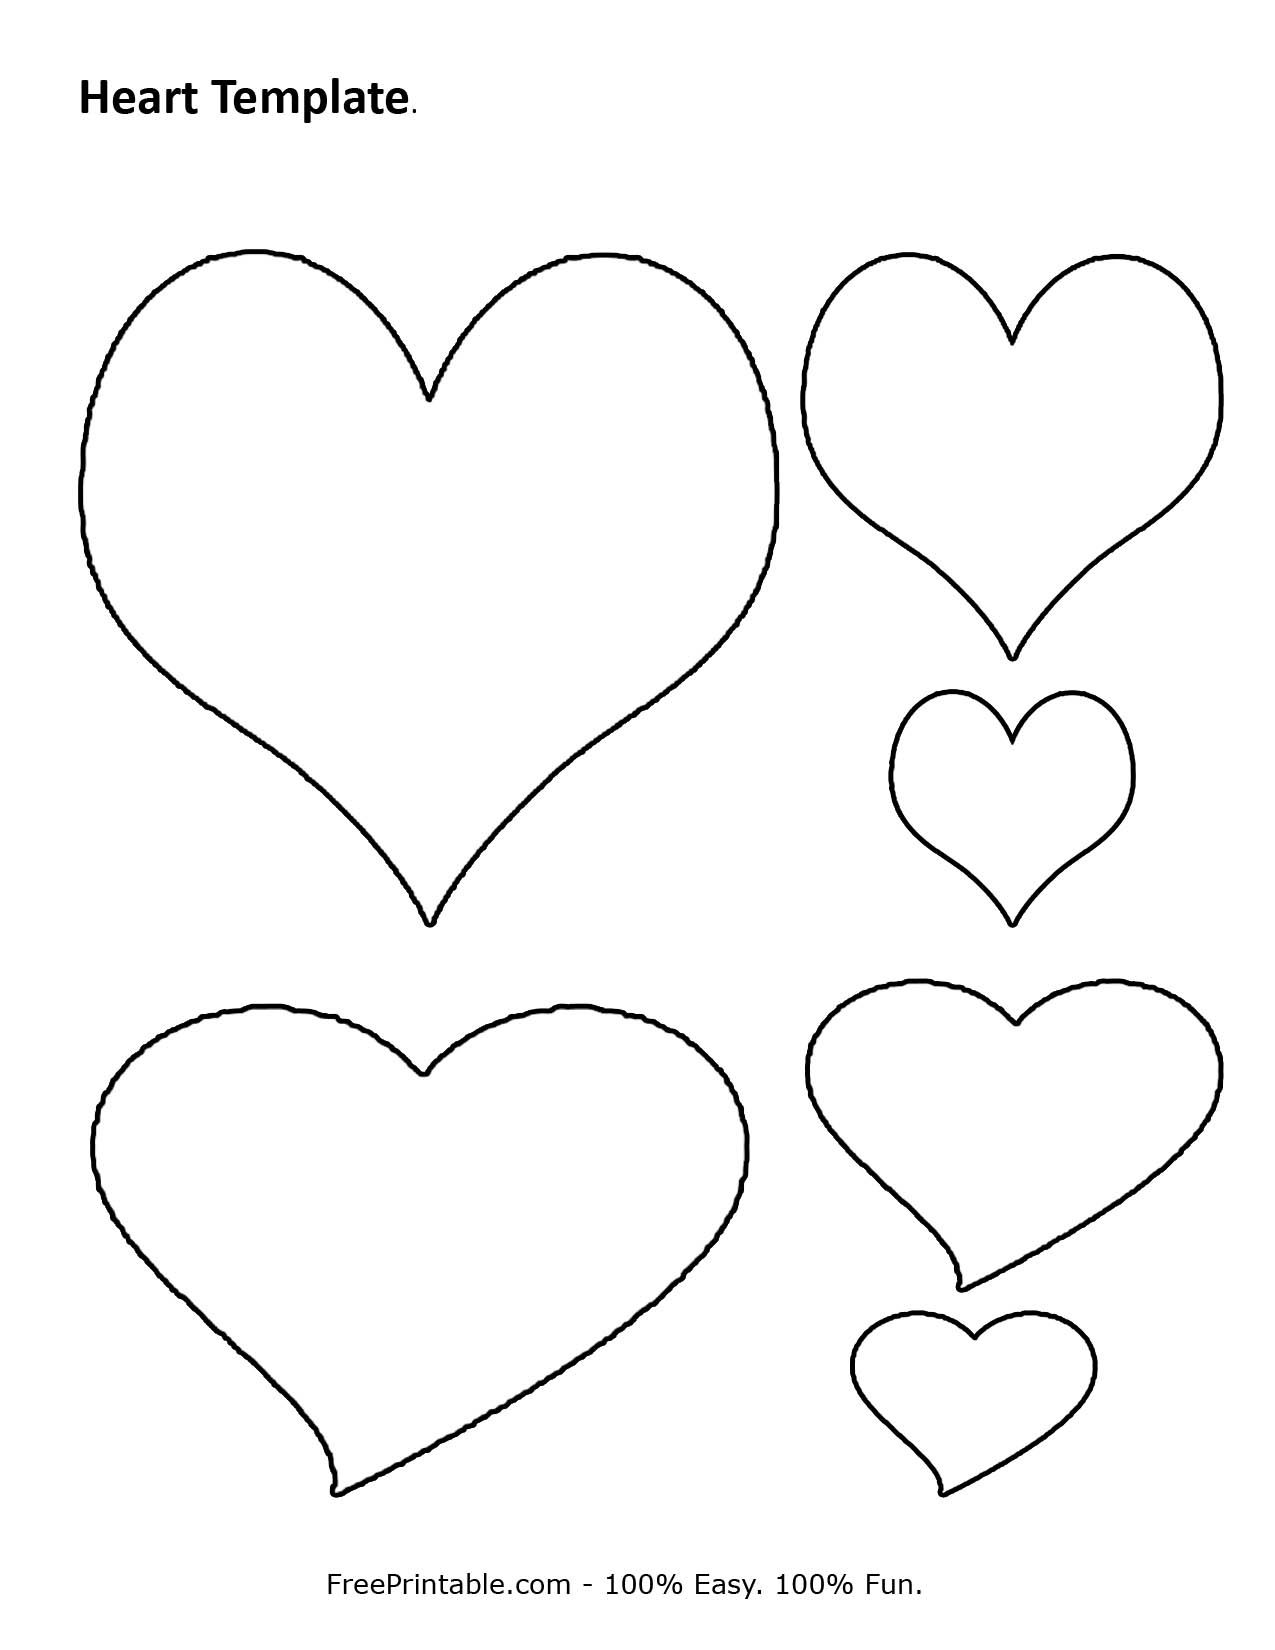 Free Printable Heart Template